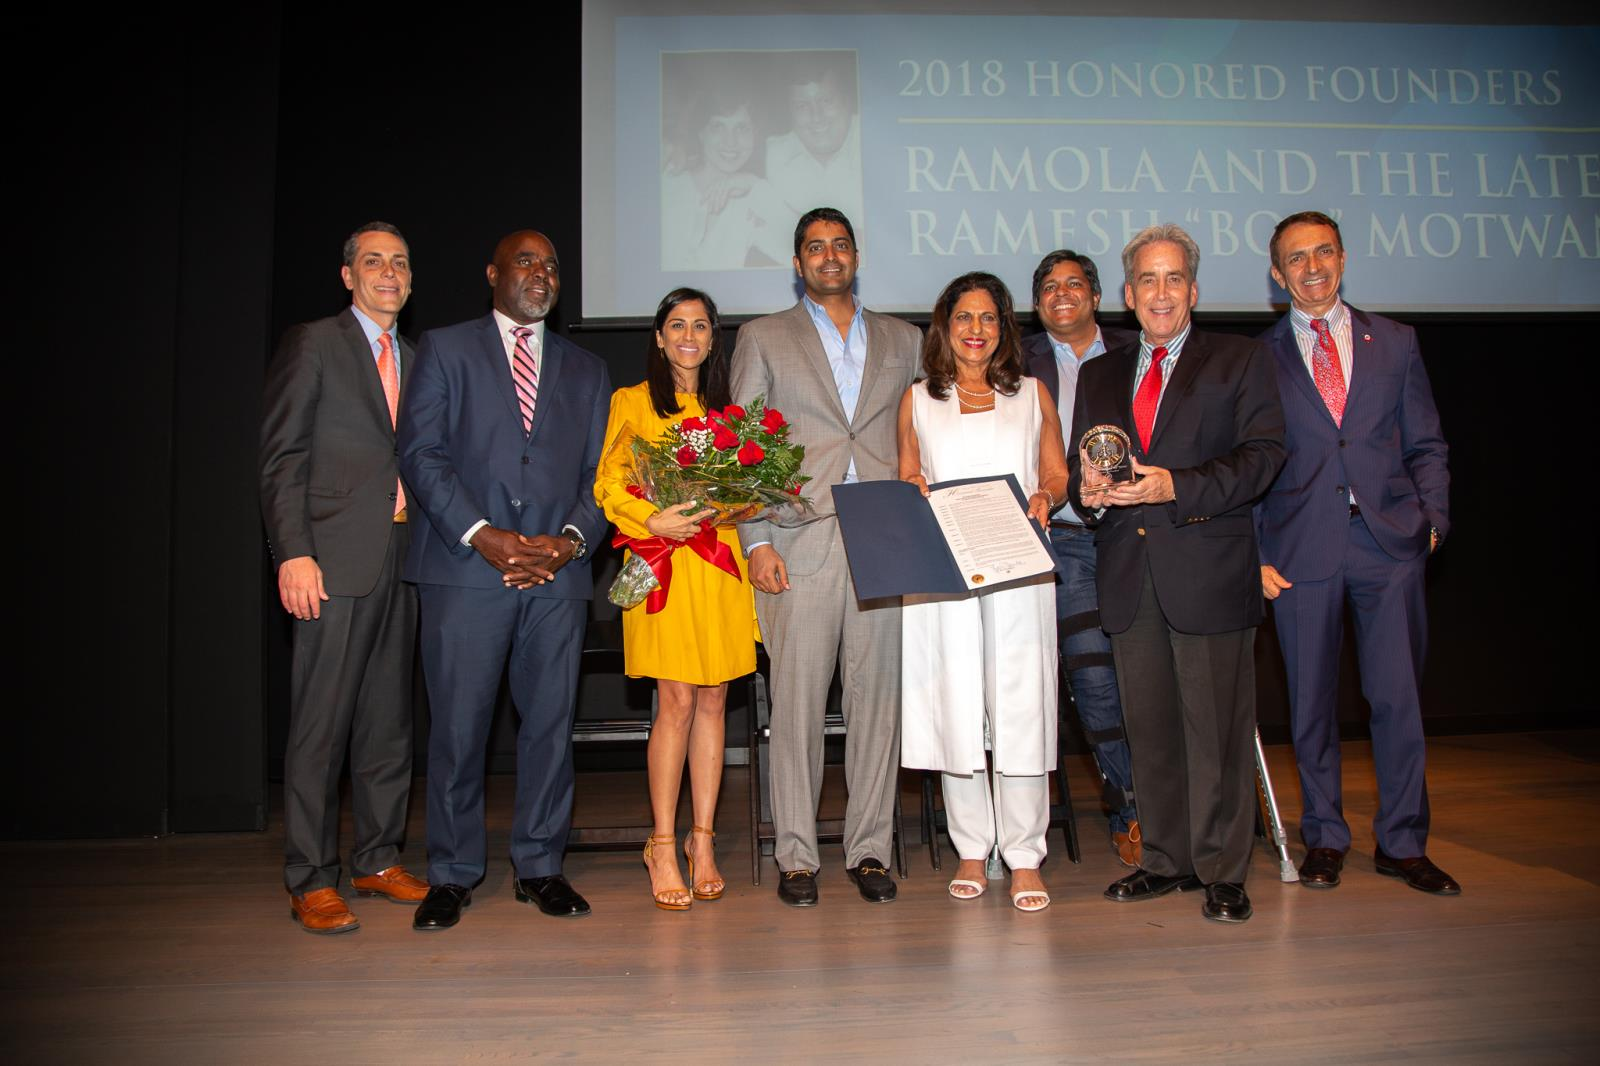 Mayor and Commissioners with 2018 Honored Founder Ramola Motwani, her sons Nitin and Dev, and daughter-in-law Anshu